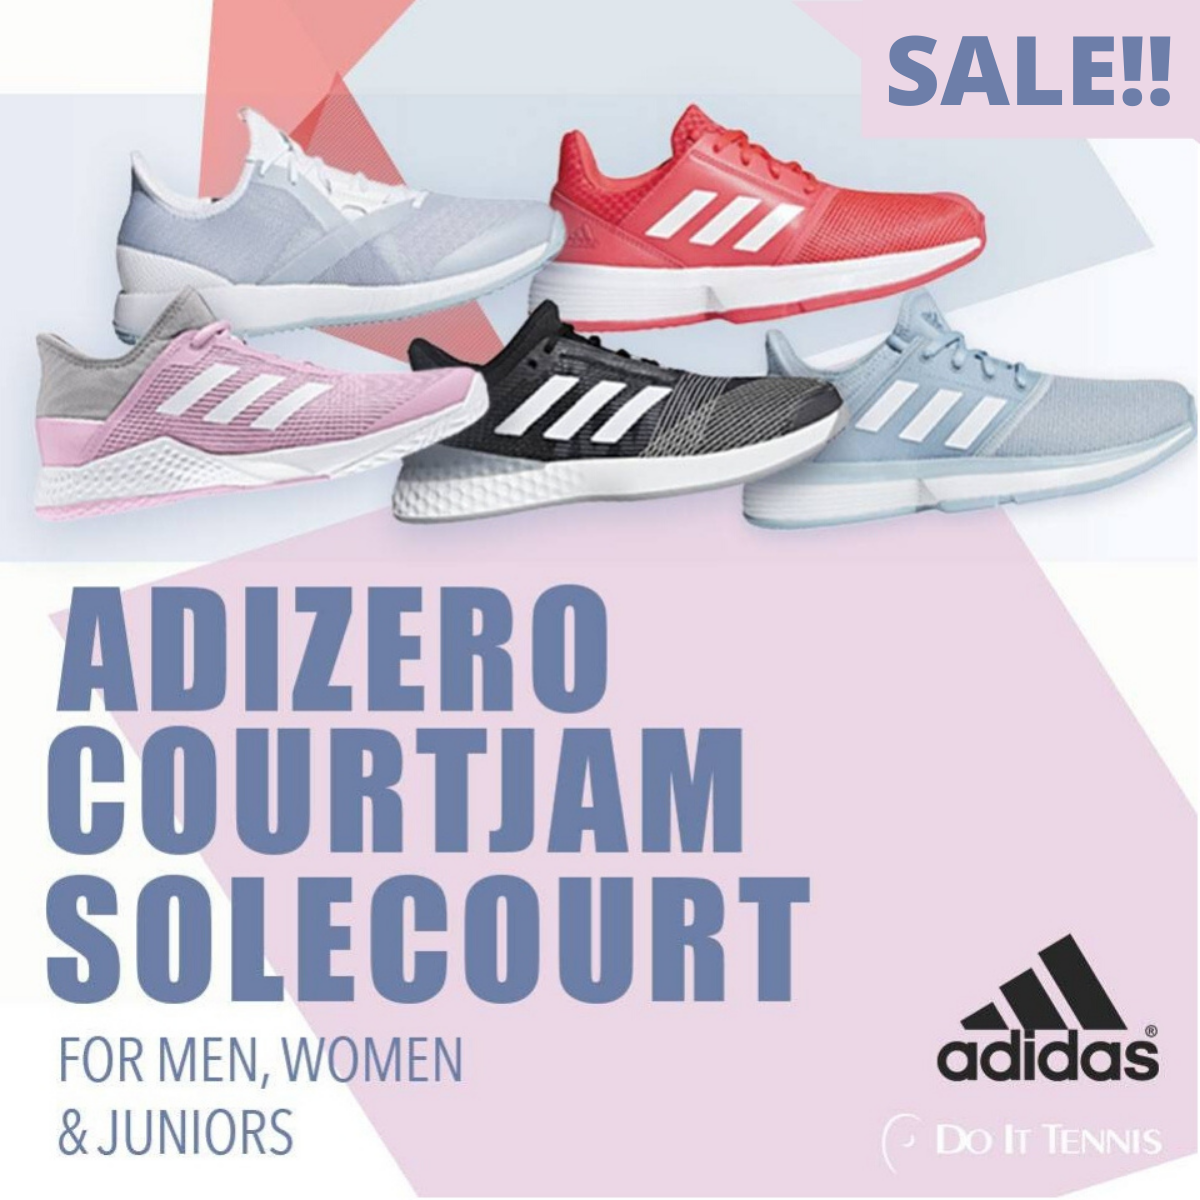 Adidas Easter Shoe Sale